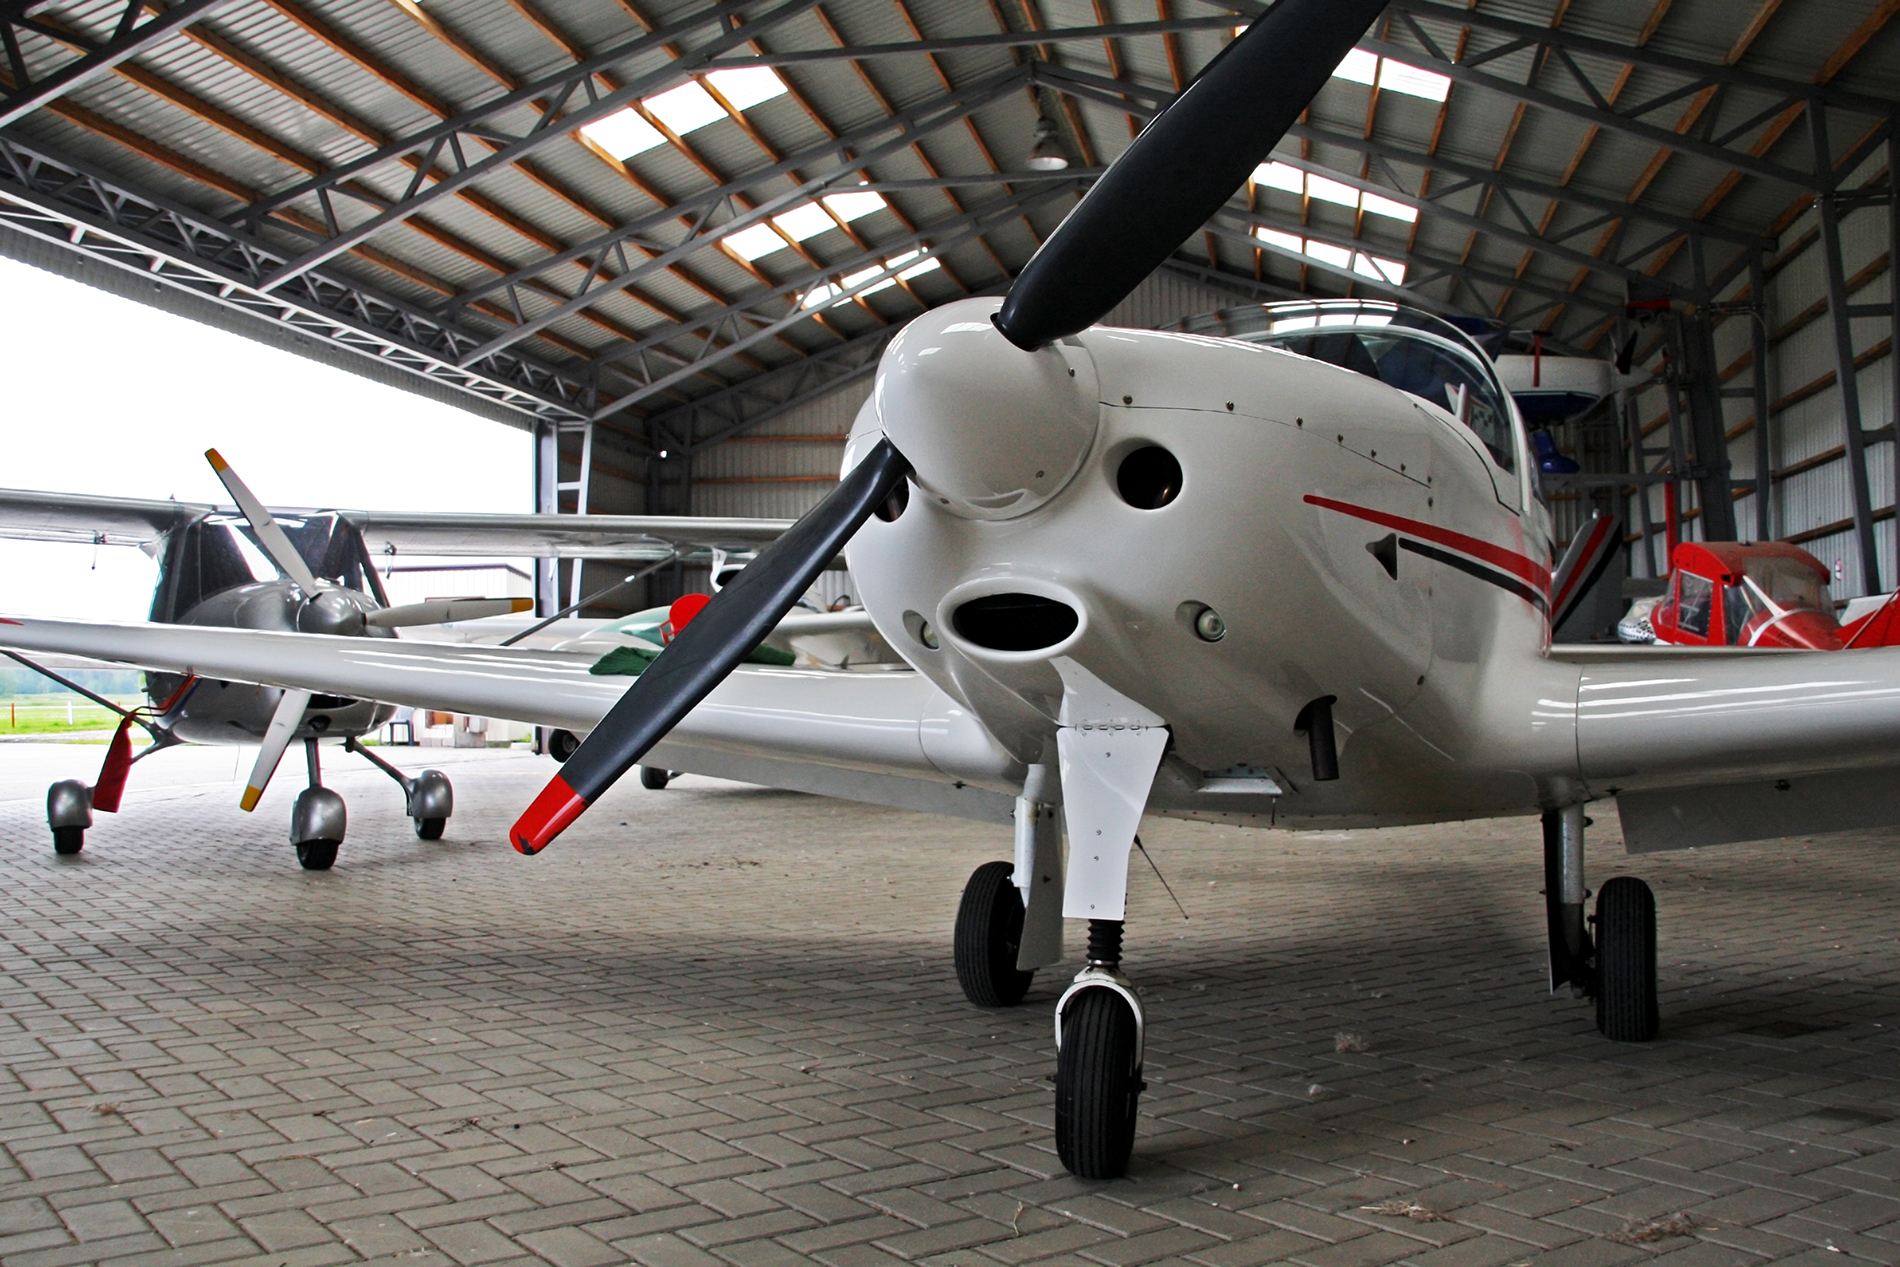 Small white plain with red trim in a hangar